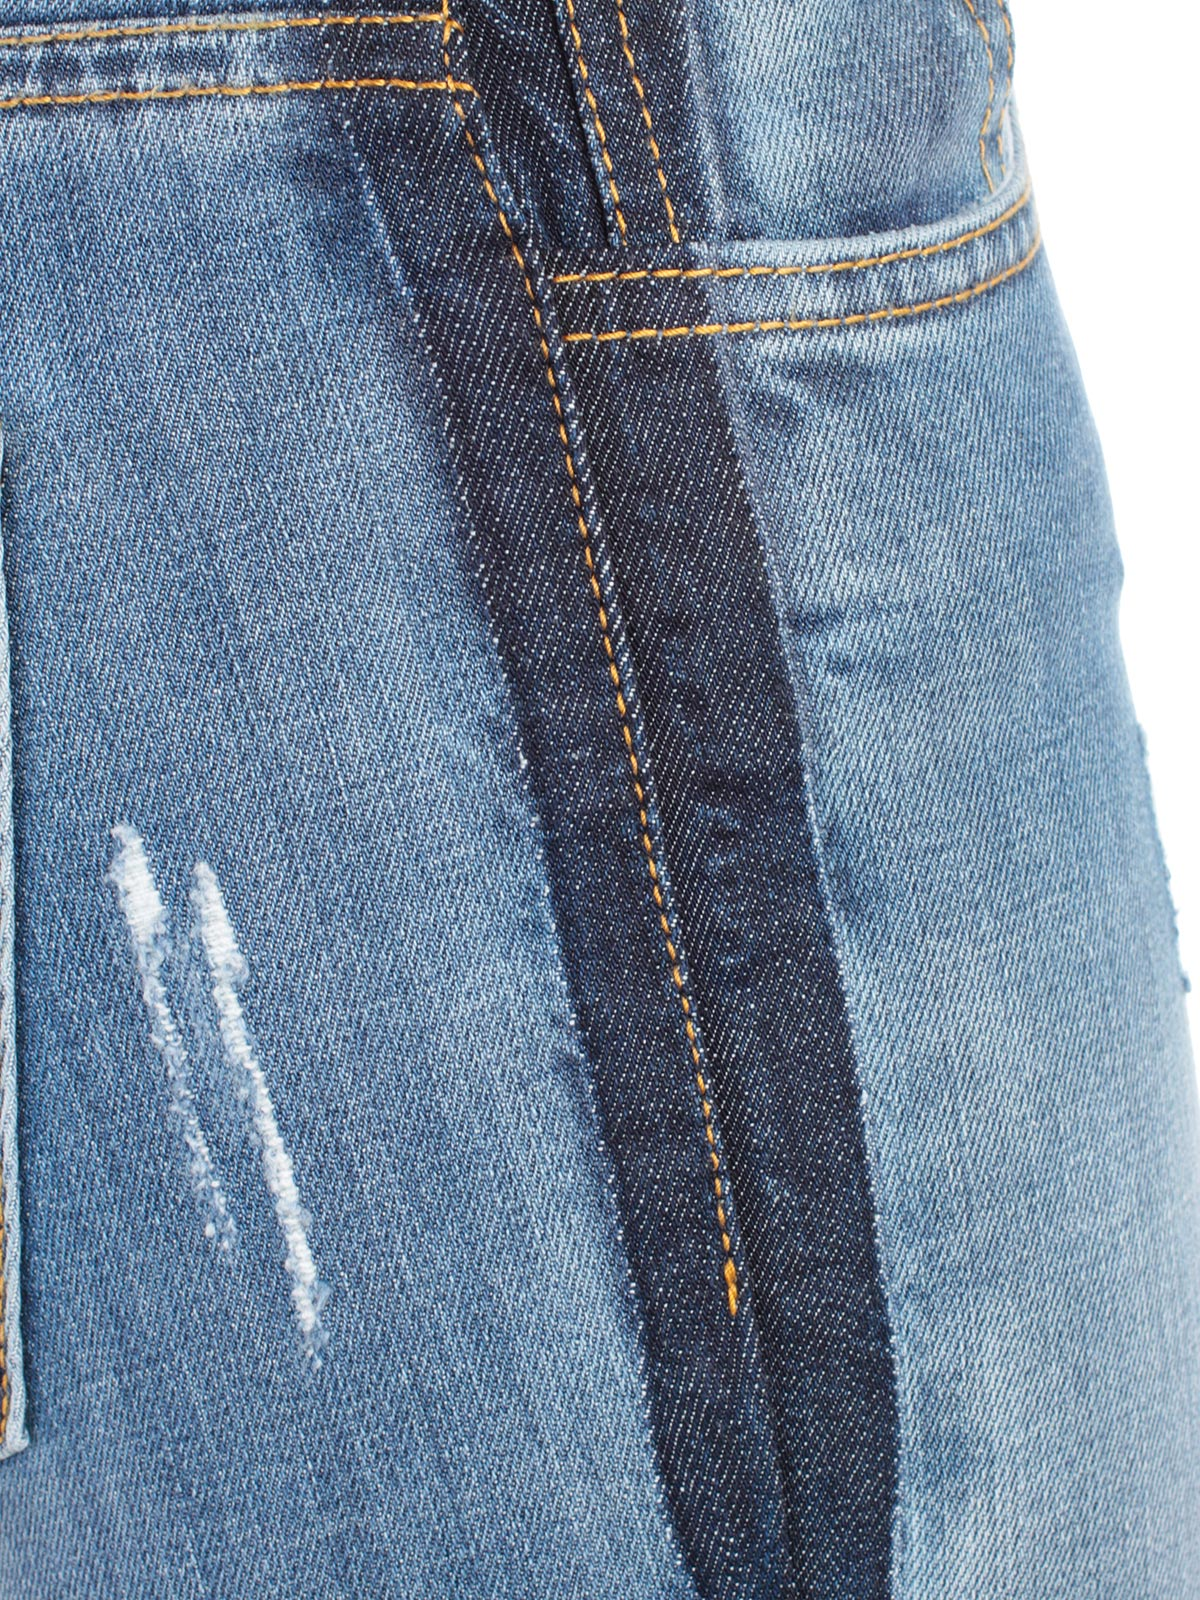 Picture of Blugirl Jeans